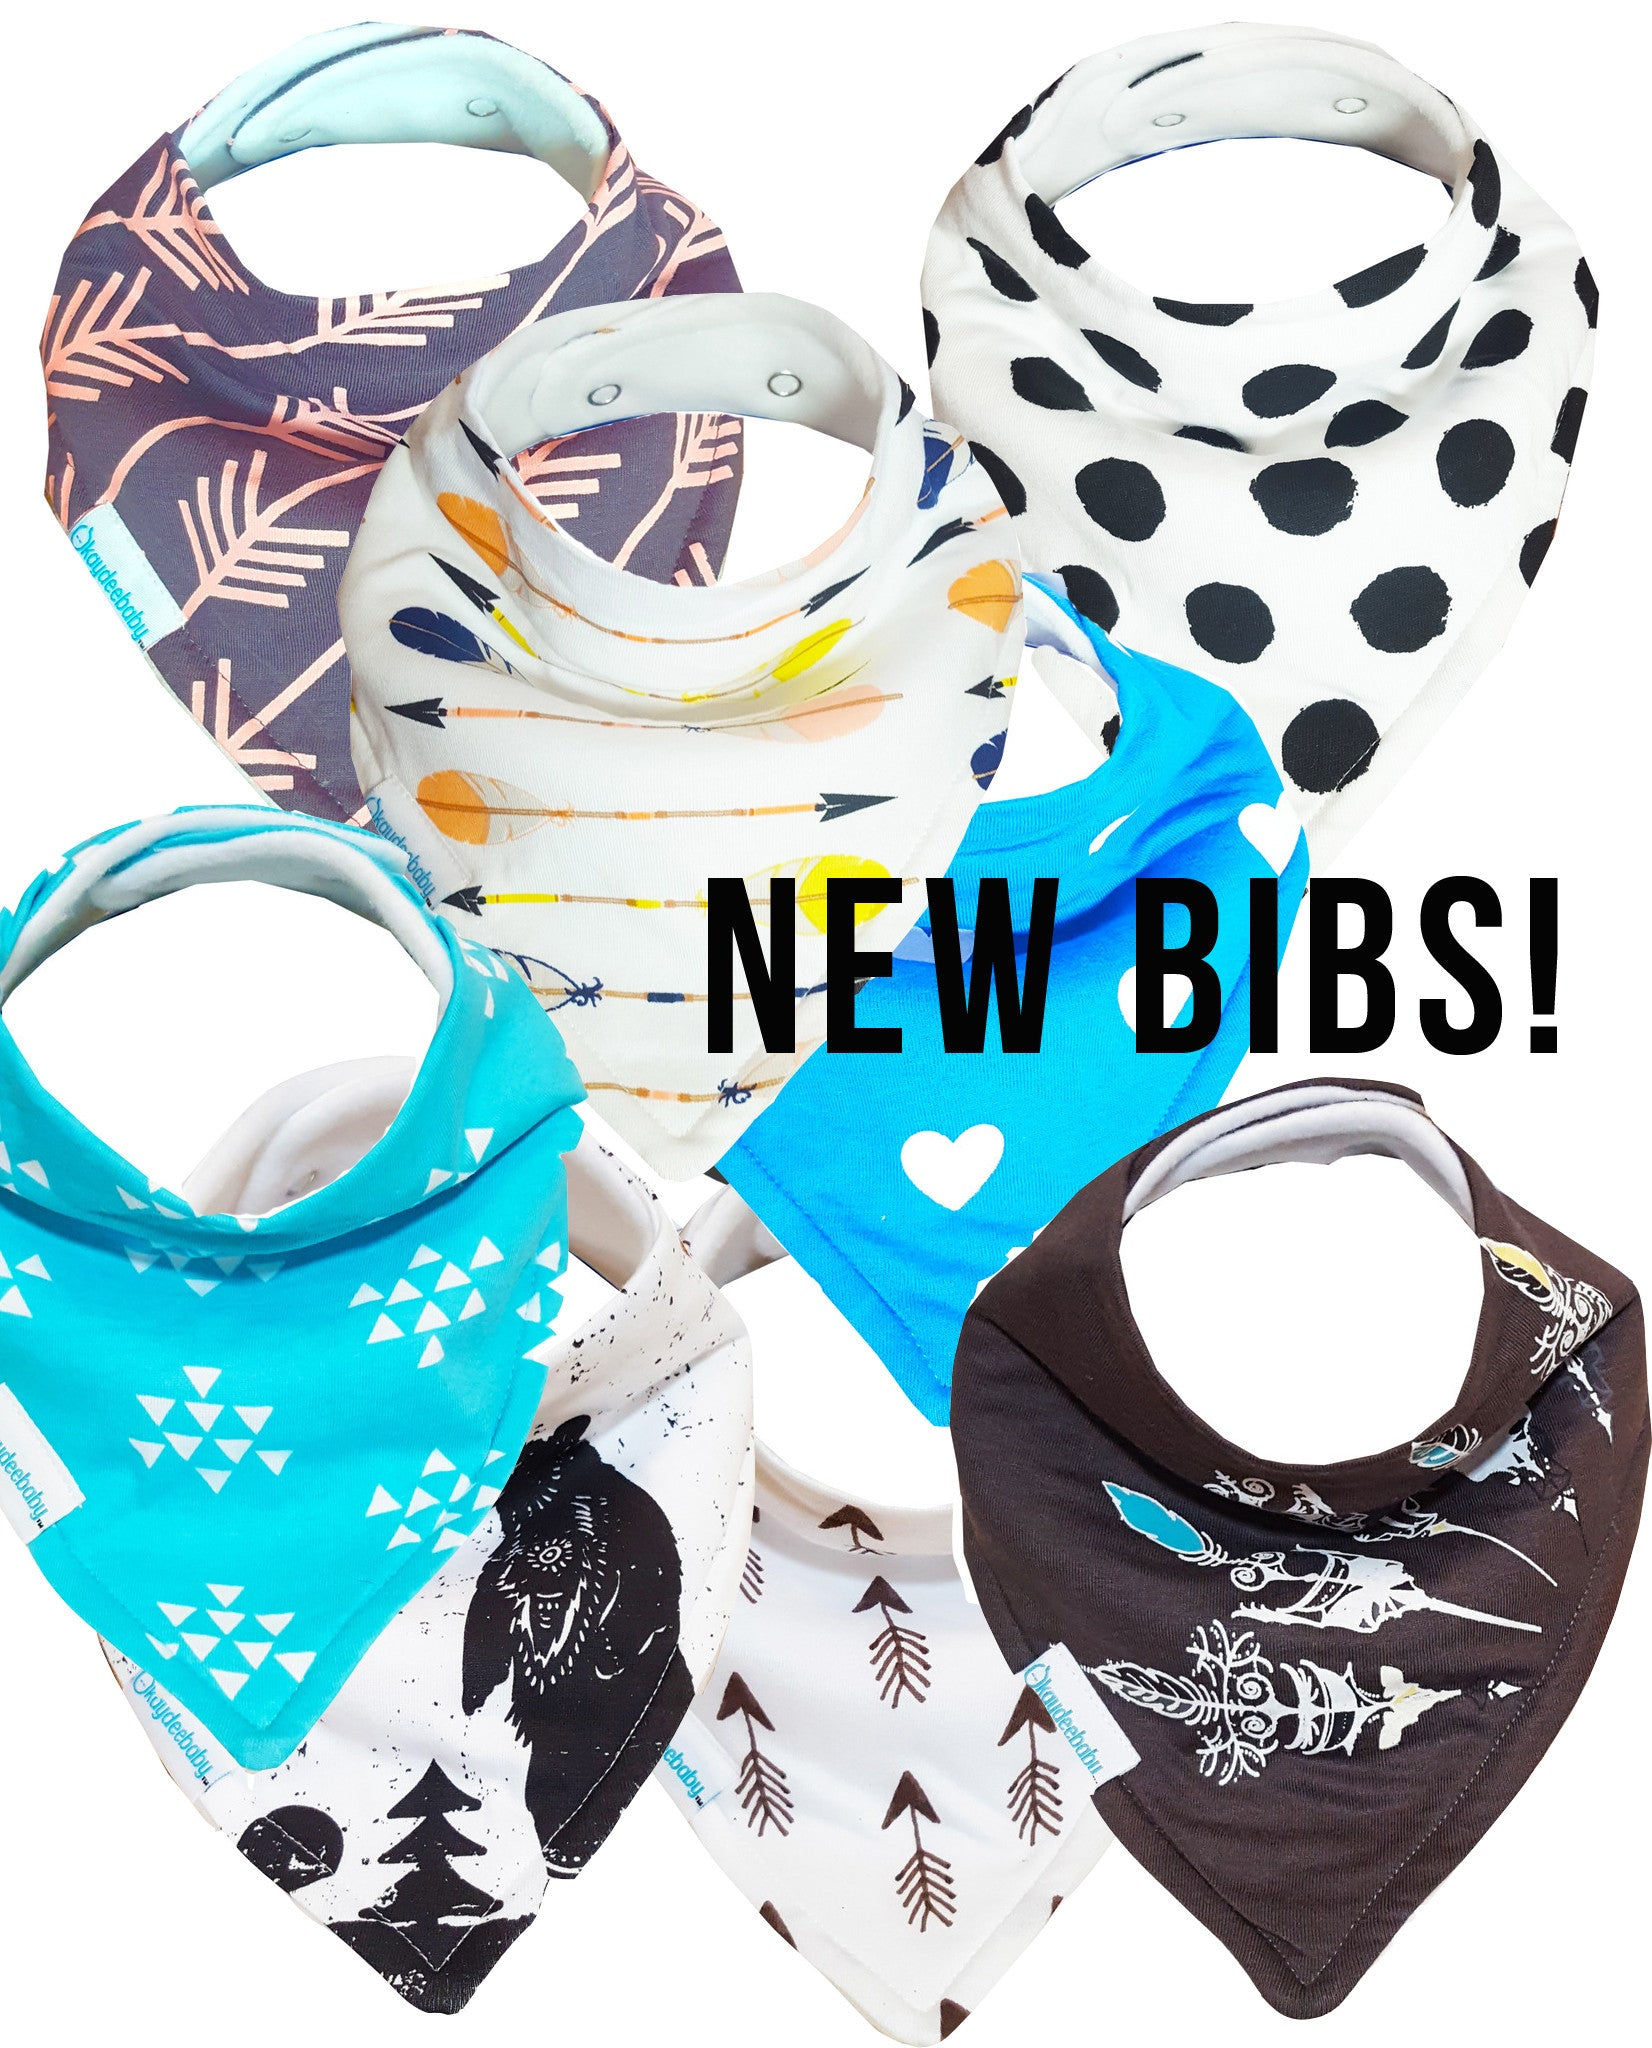 New Bandana Bib Sets: Vibes + Cupid